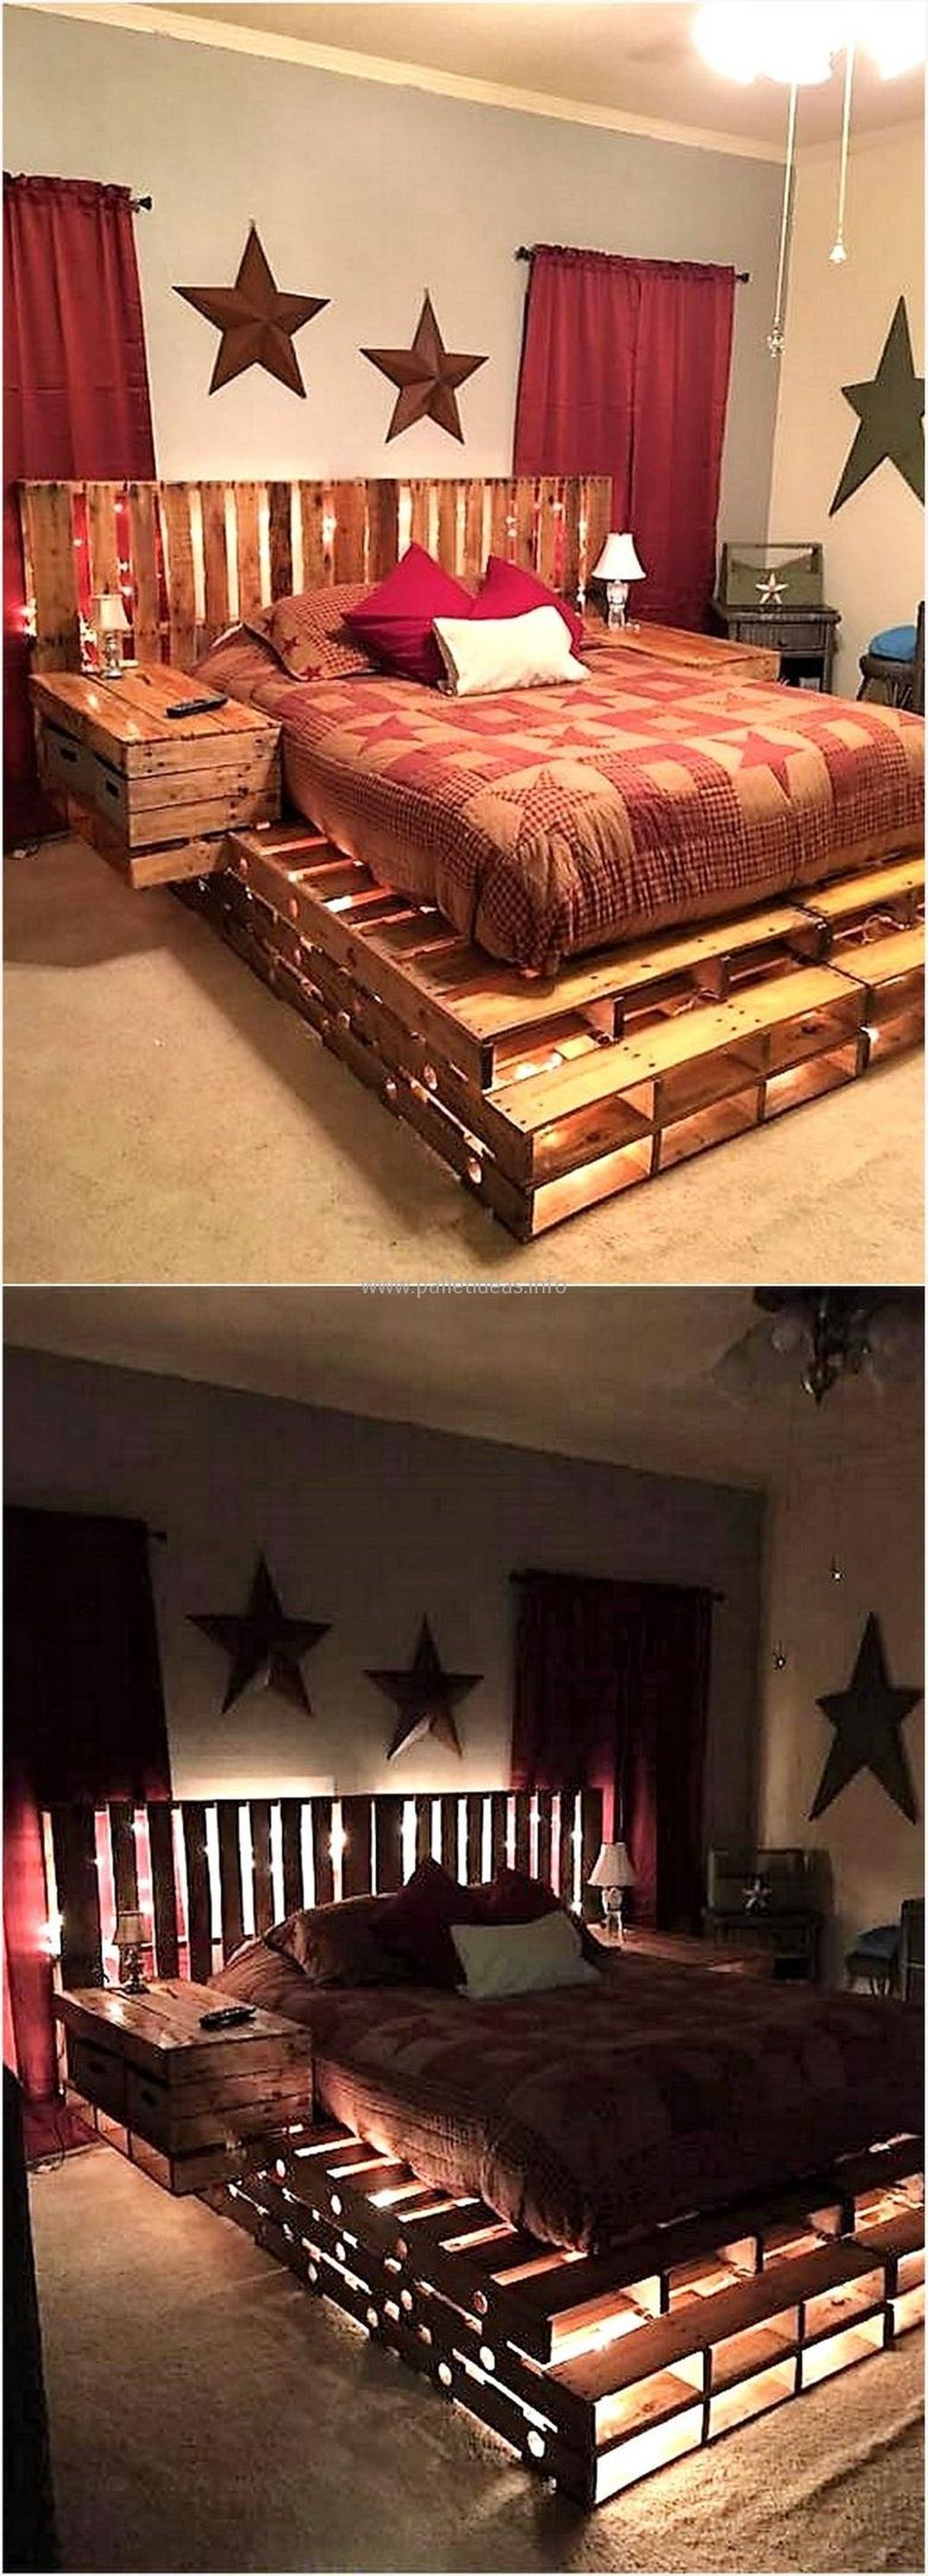 50 Easy and Inexpensive DIY Pallet Furniture Ideas